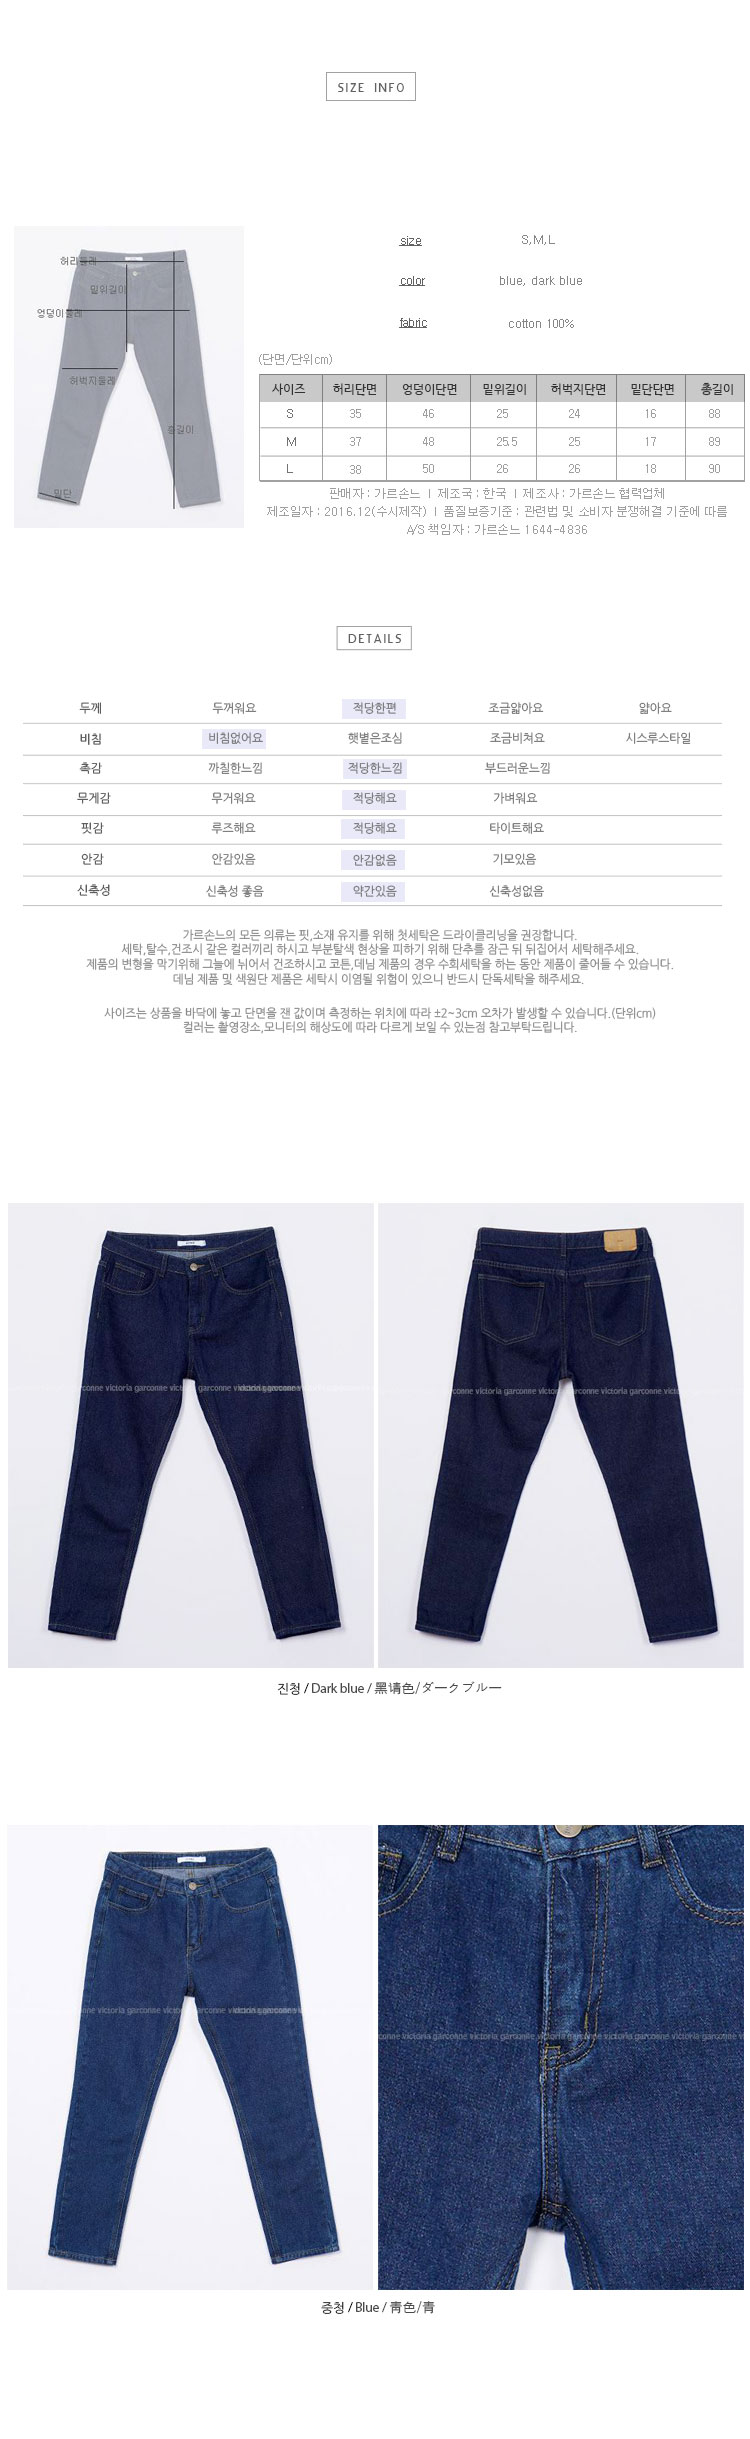 You are only denim pants